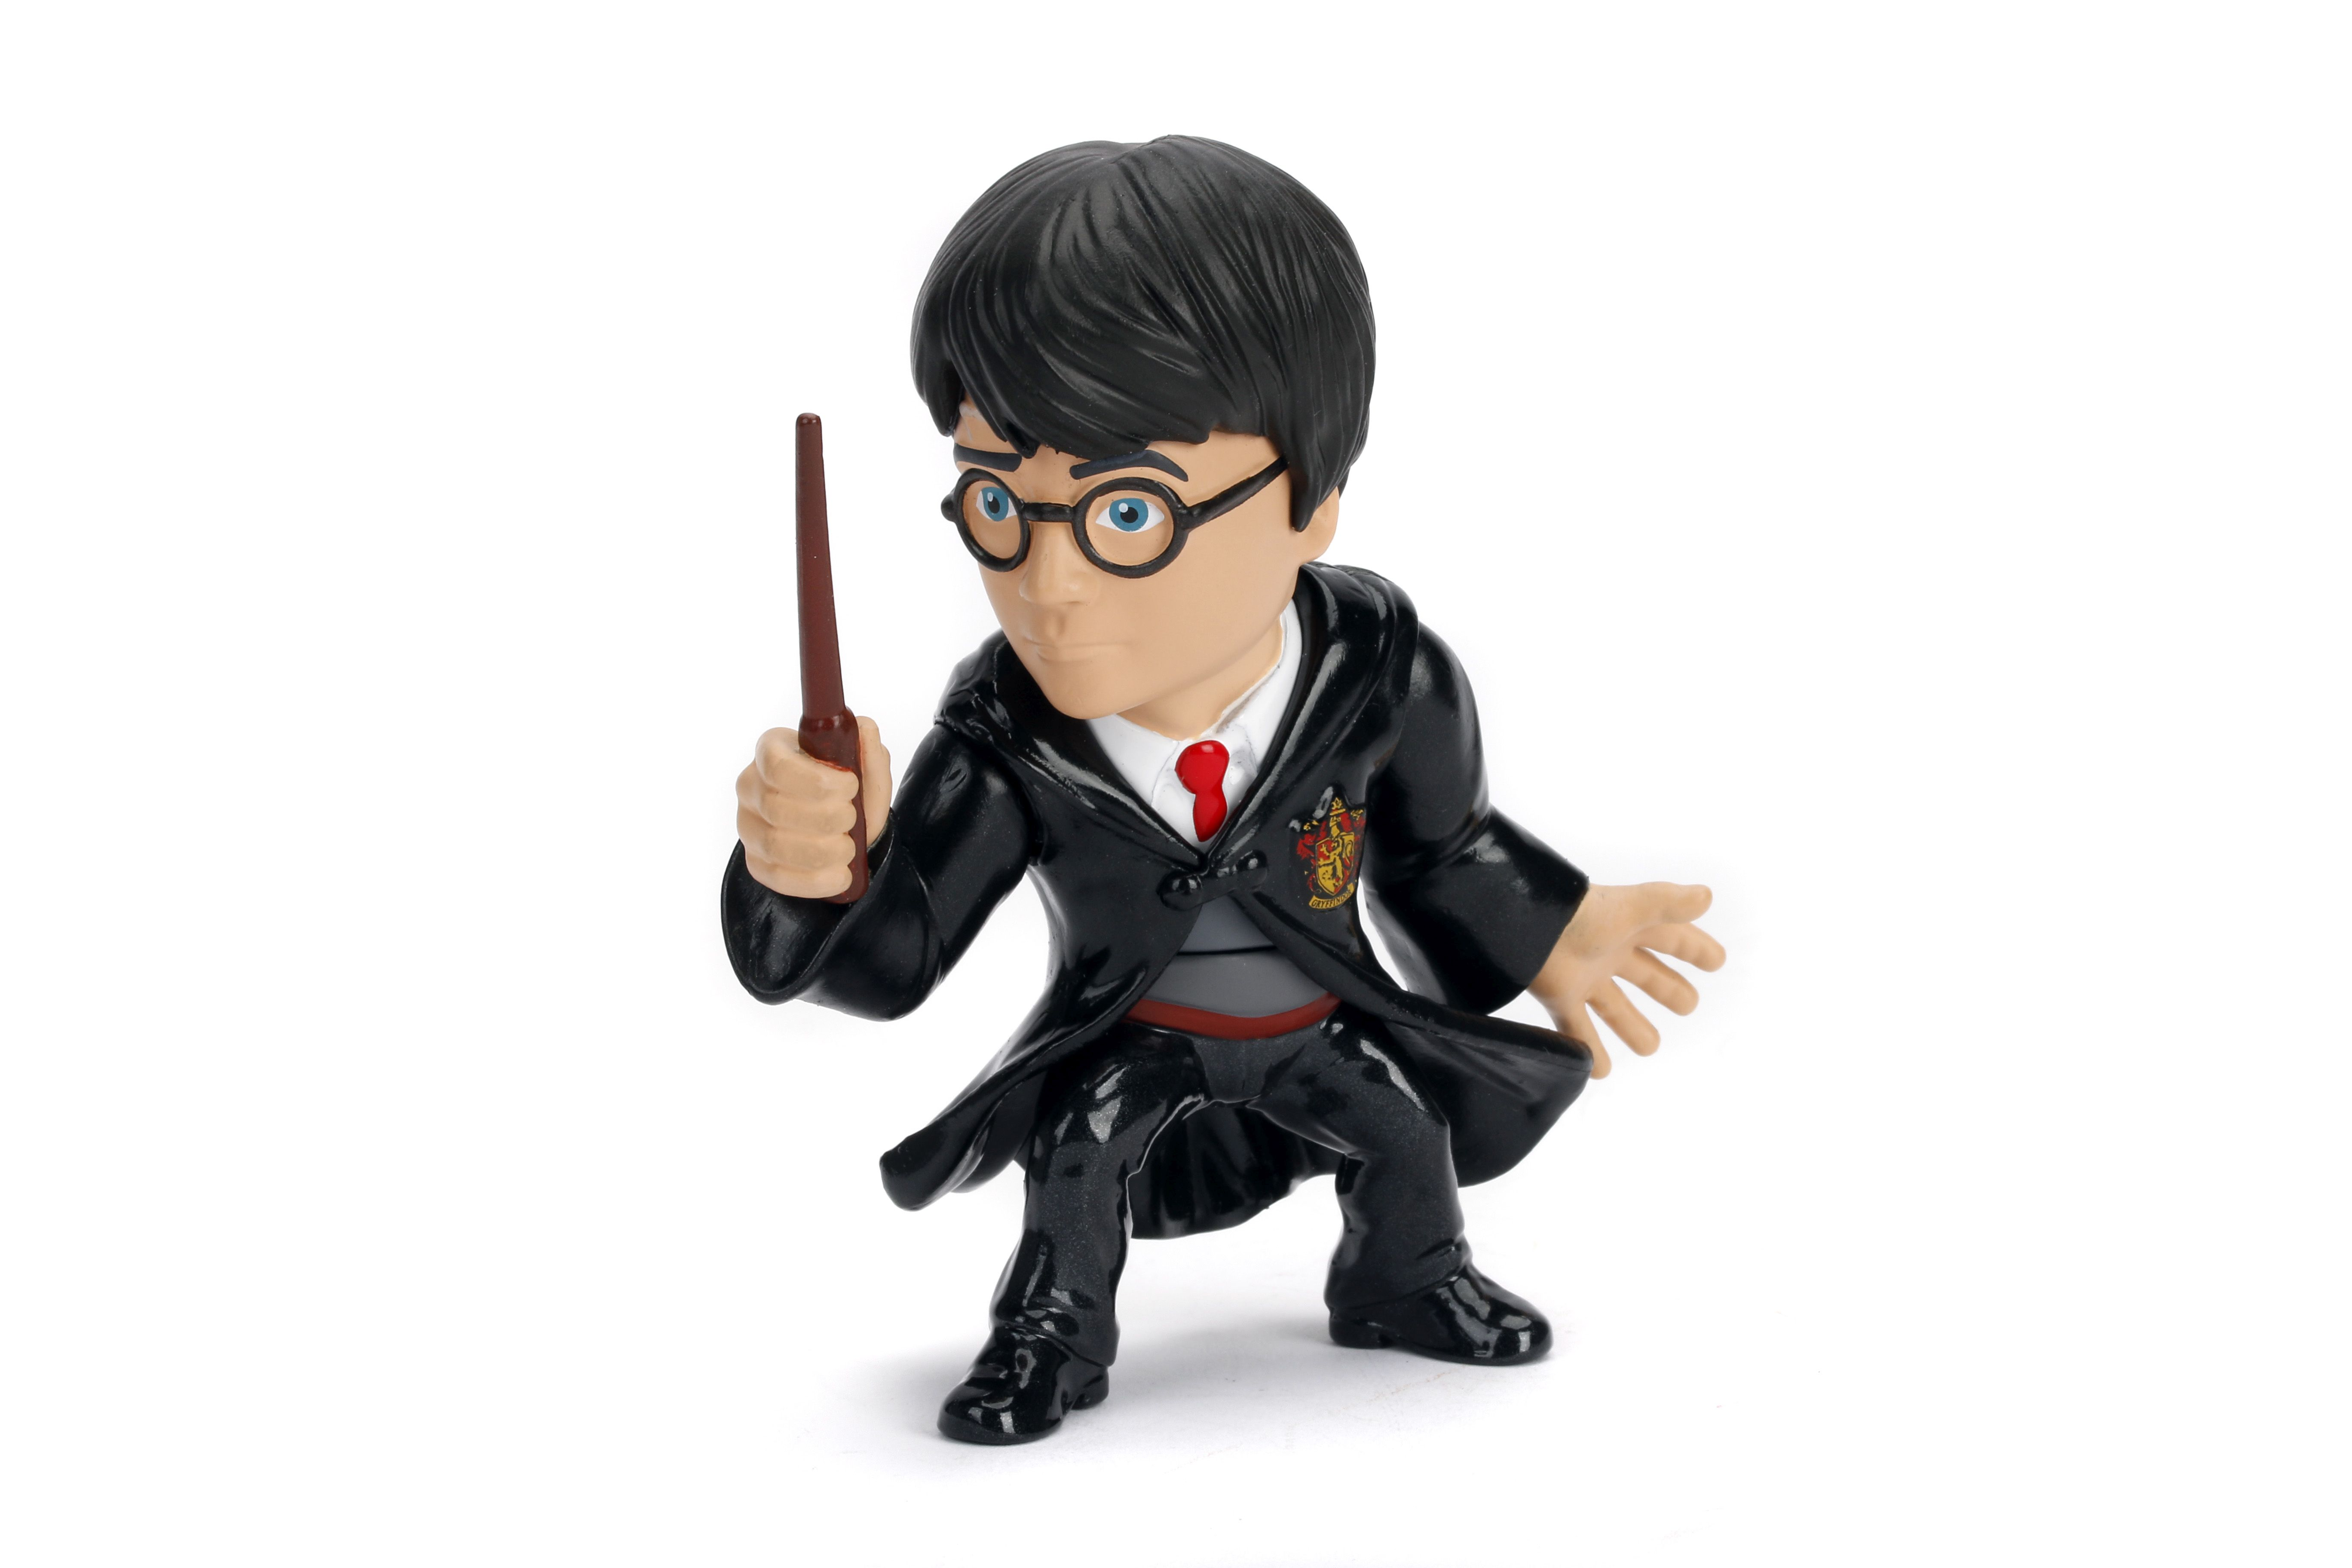 "Harry Potter (Jahr 1) 4"" Figur"